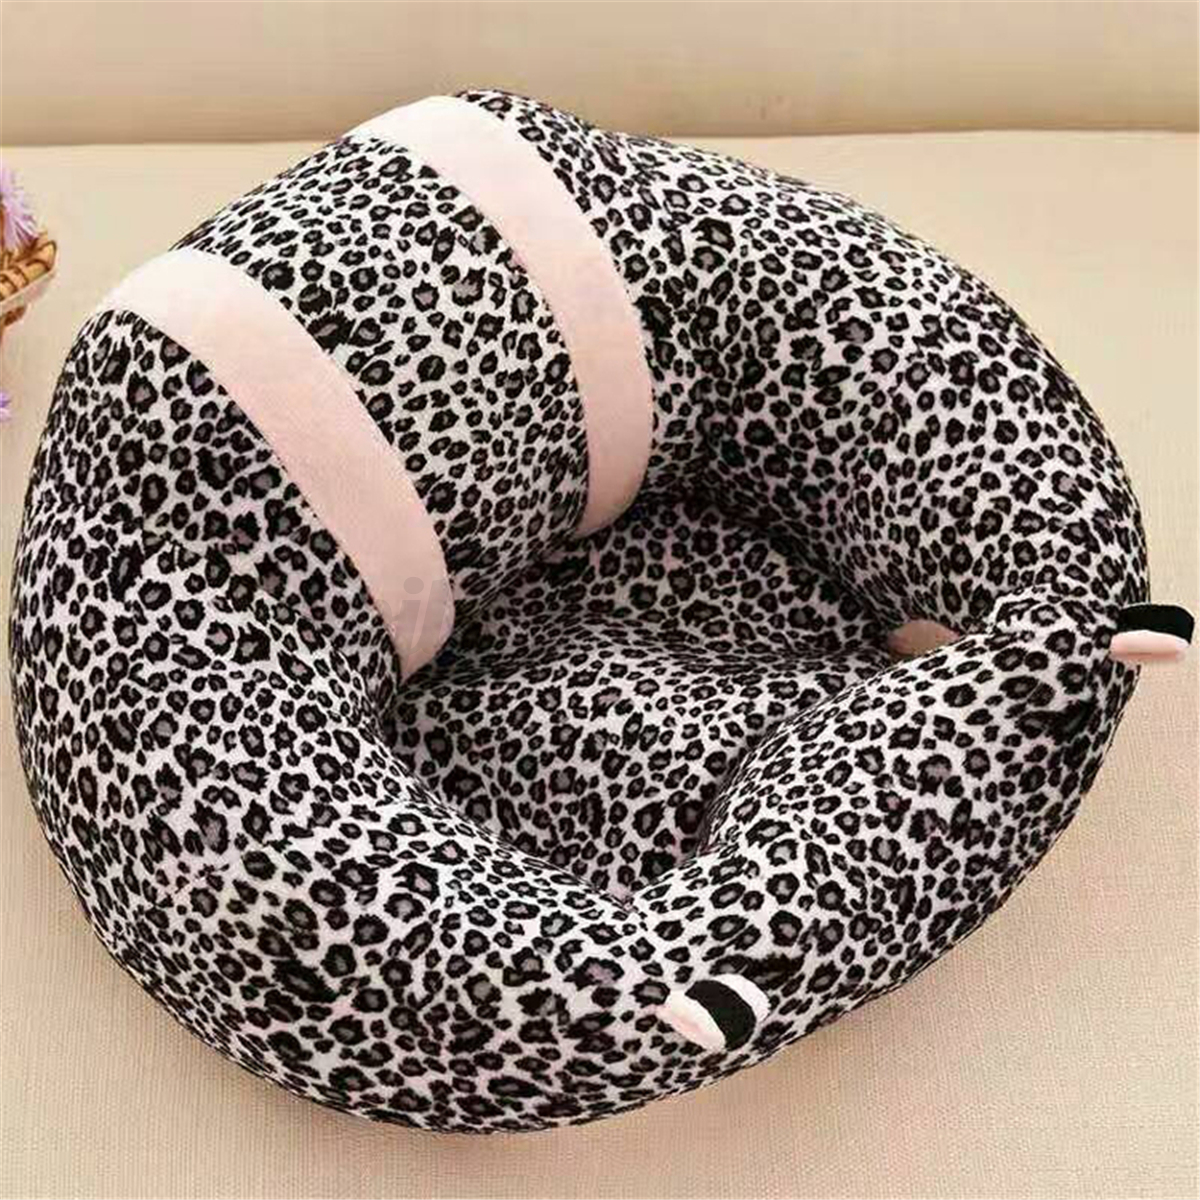 Baby Sofa Seat Learn Sit Soft Chair Children Kids Sleeping Plush